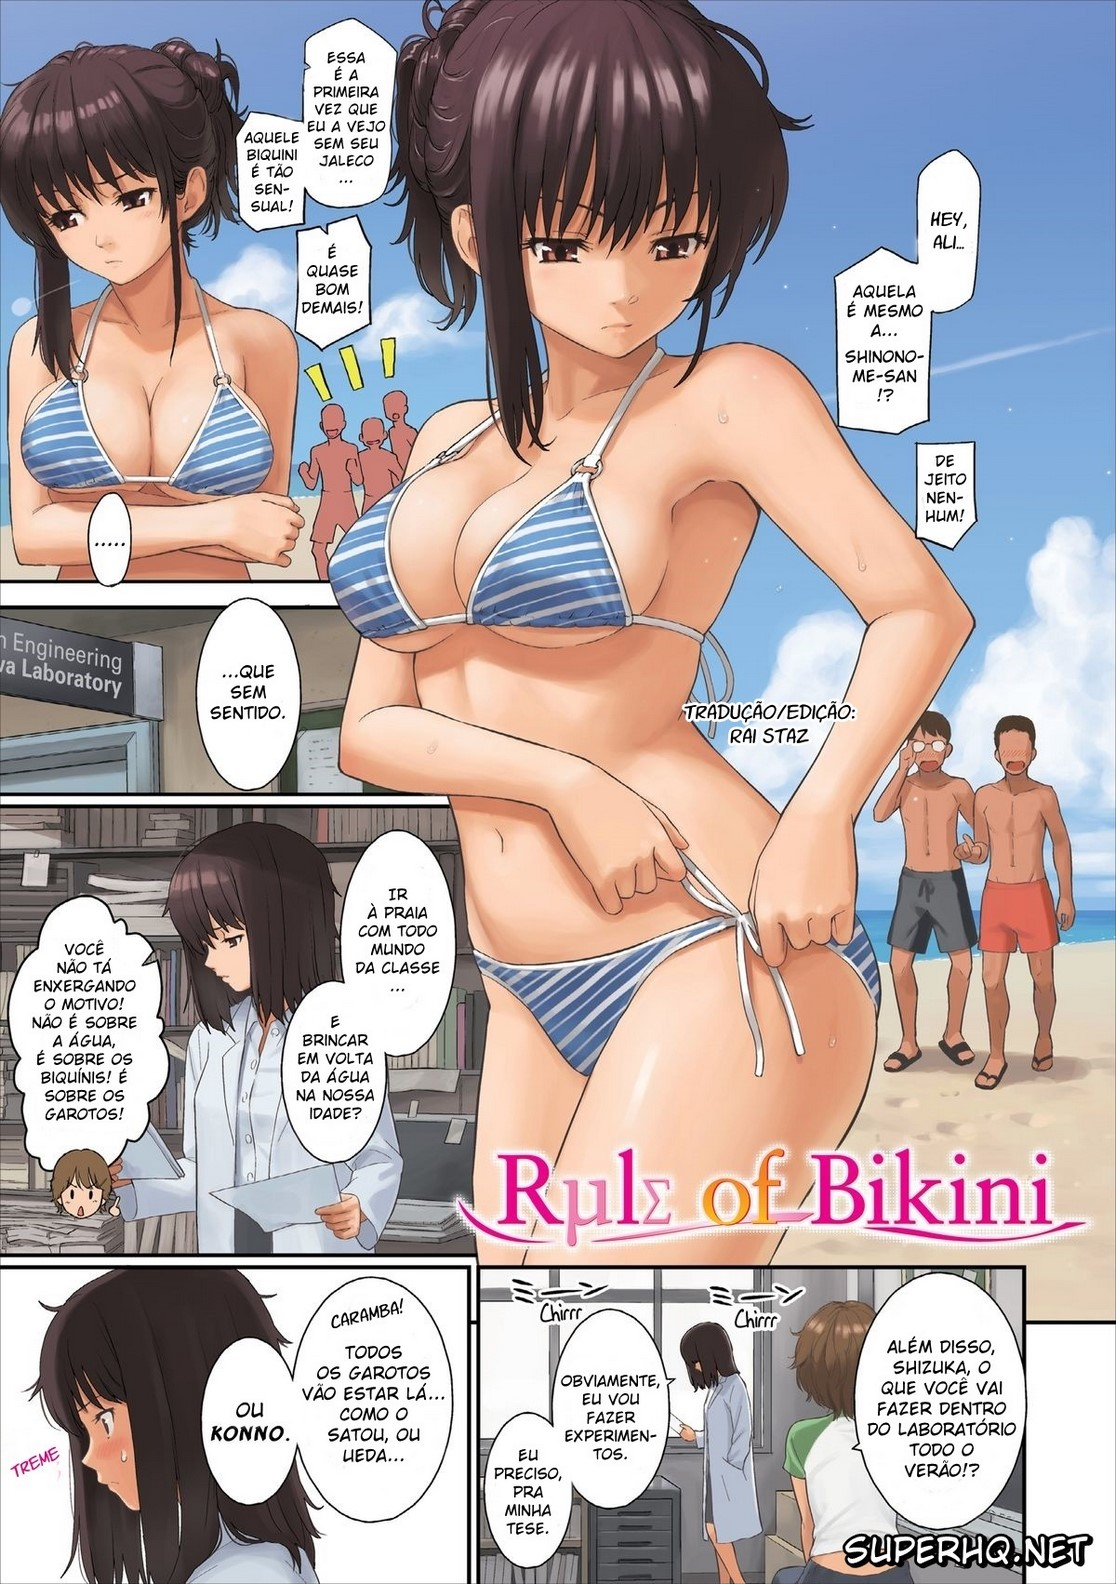 Rule of Bikini